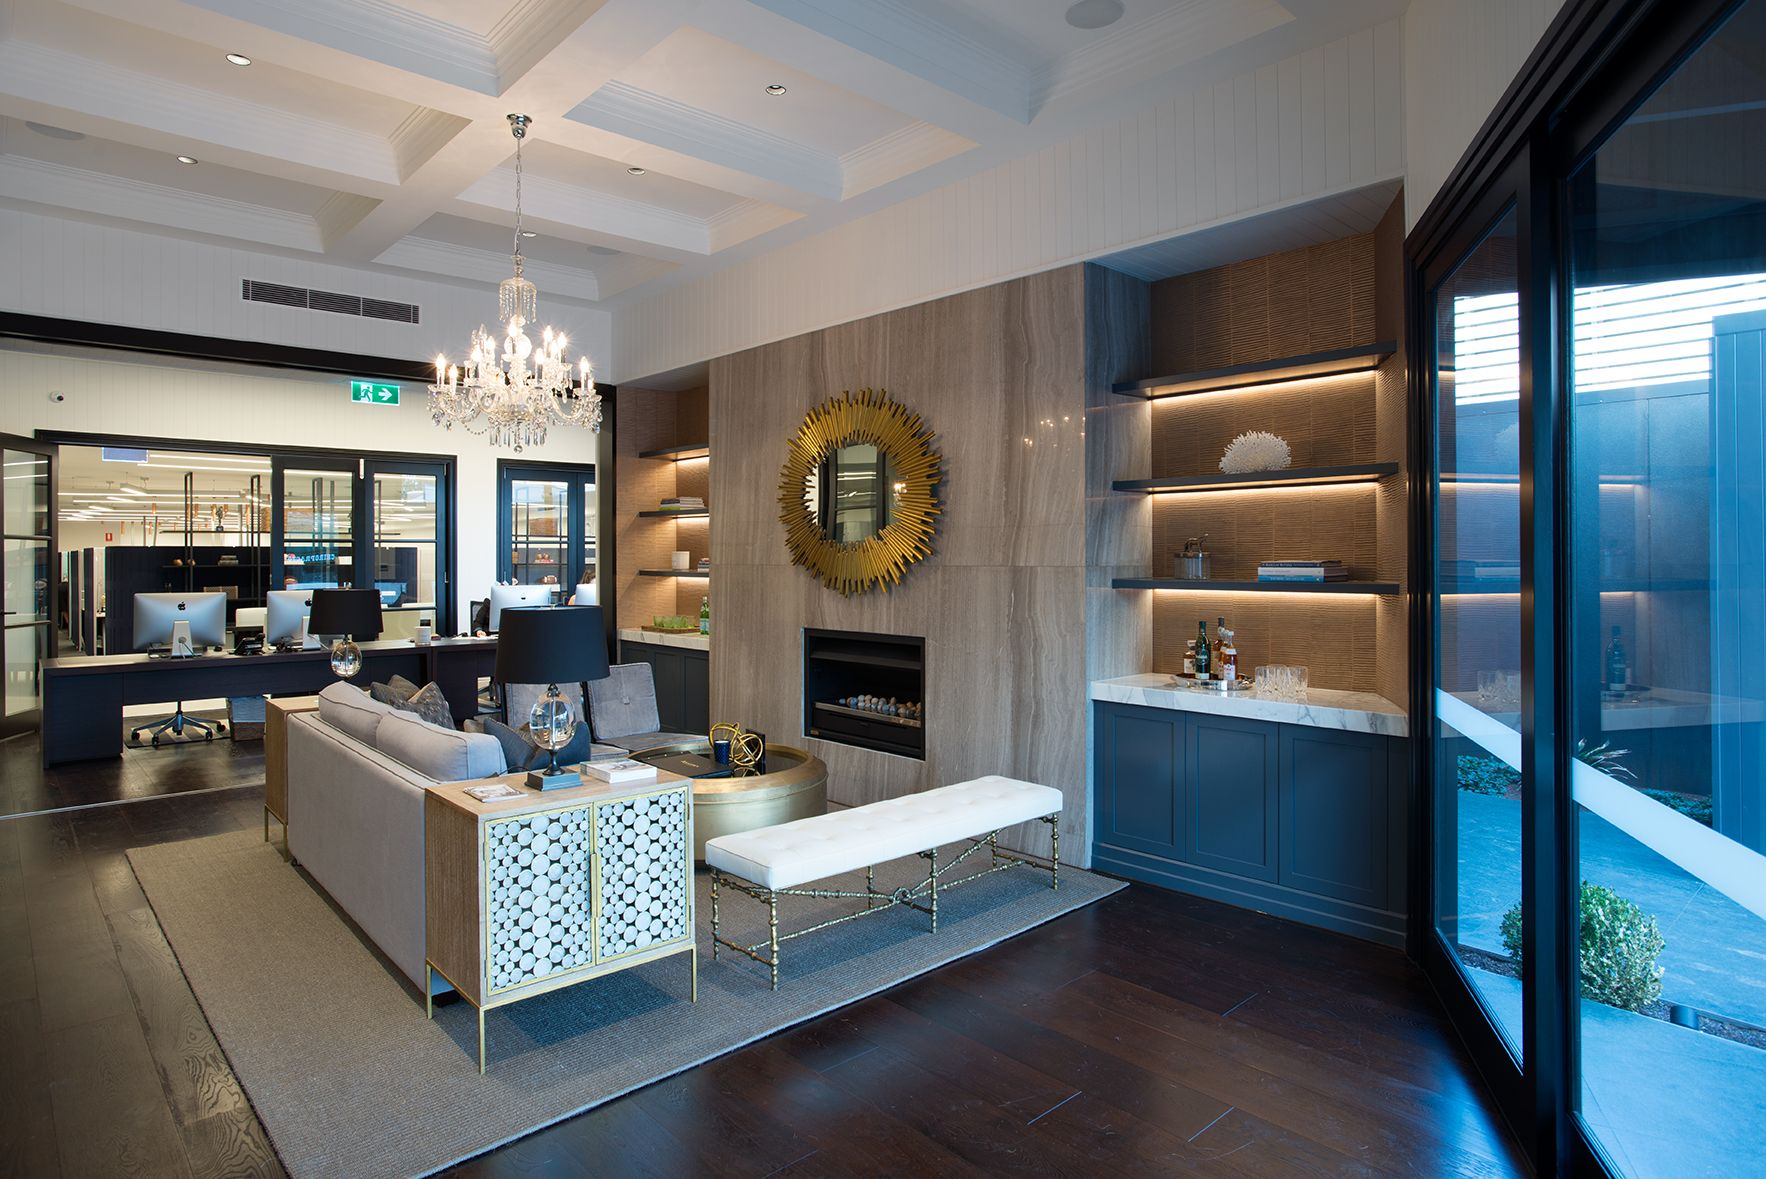 Place Real Estate Commercial Office Fitout Interior Design